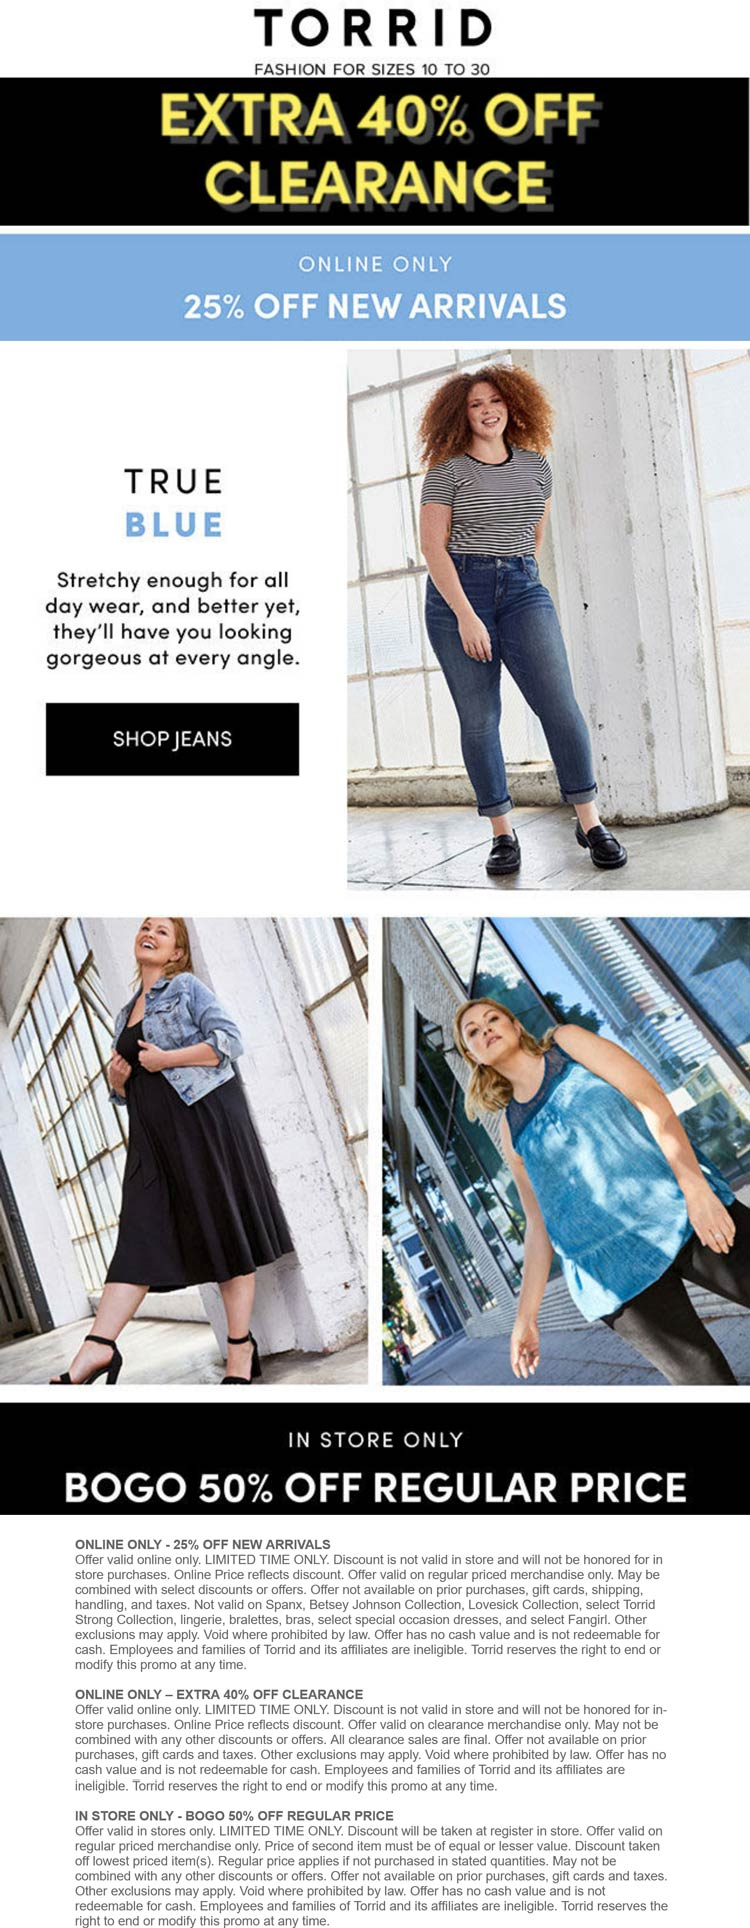 Torrid stores Coupon  Second item 50% off at Torrid, or 25% new arrivals & 40% off clearance online #torrid